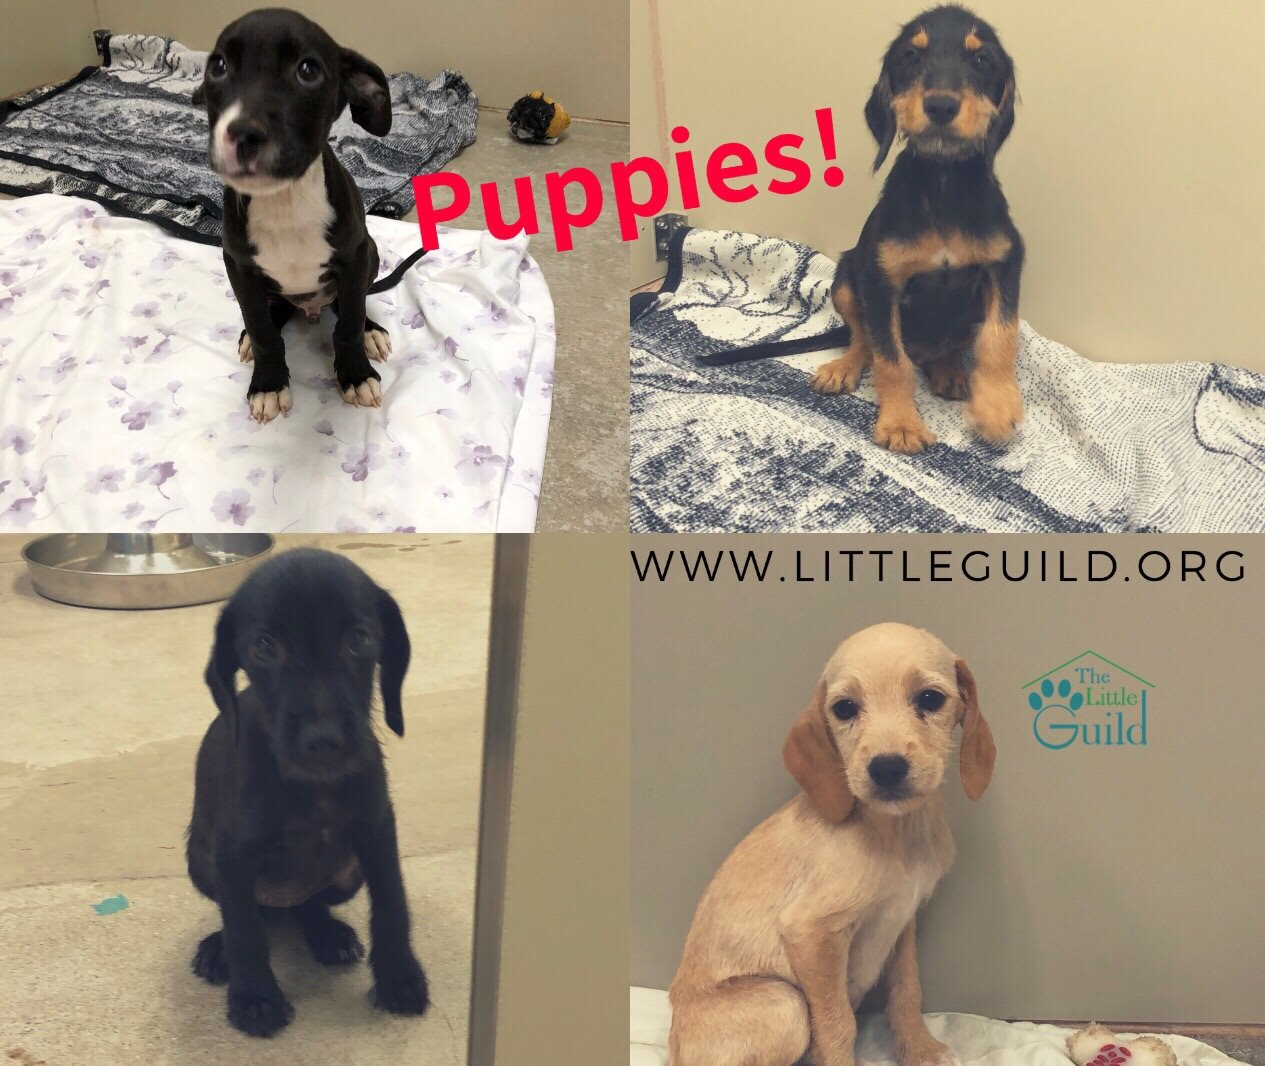 Animal Shelter | Cornwall | The Little Guild